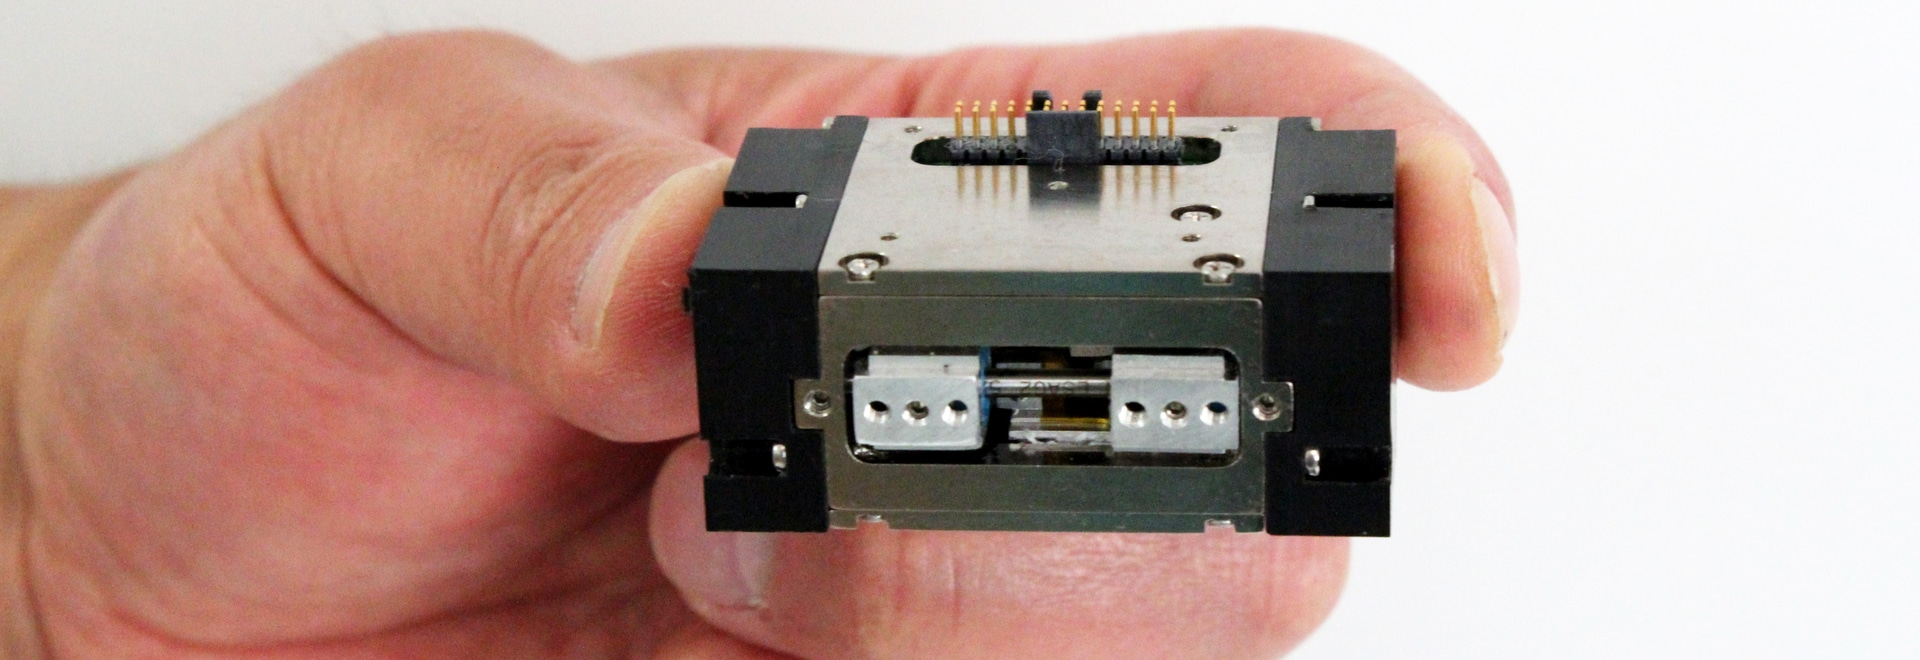 SMAC Introduces Programmable Micro Gripper for Handling Fragile Parts